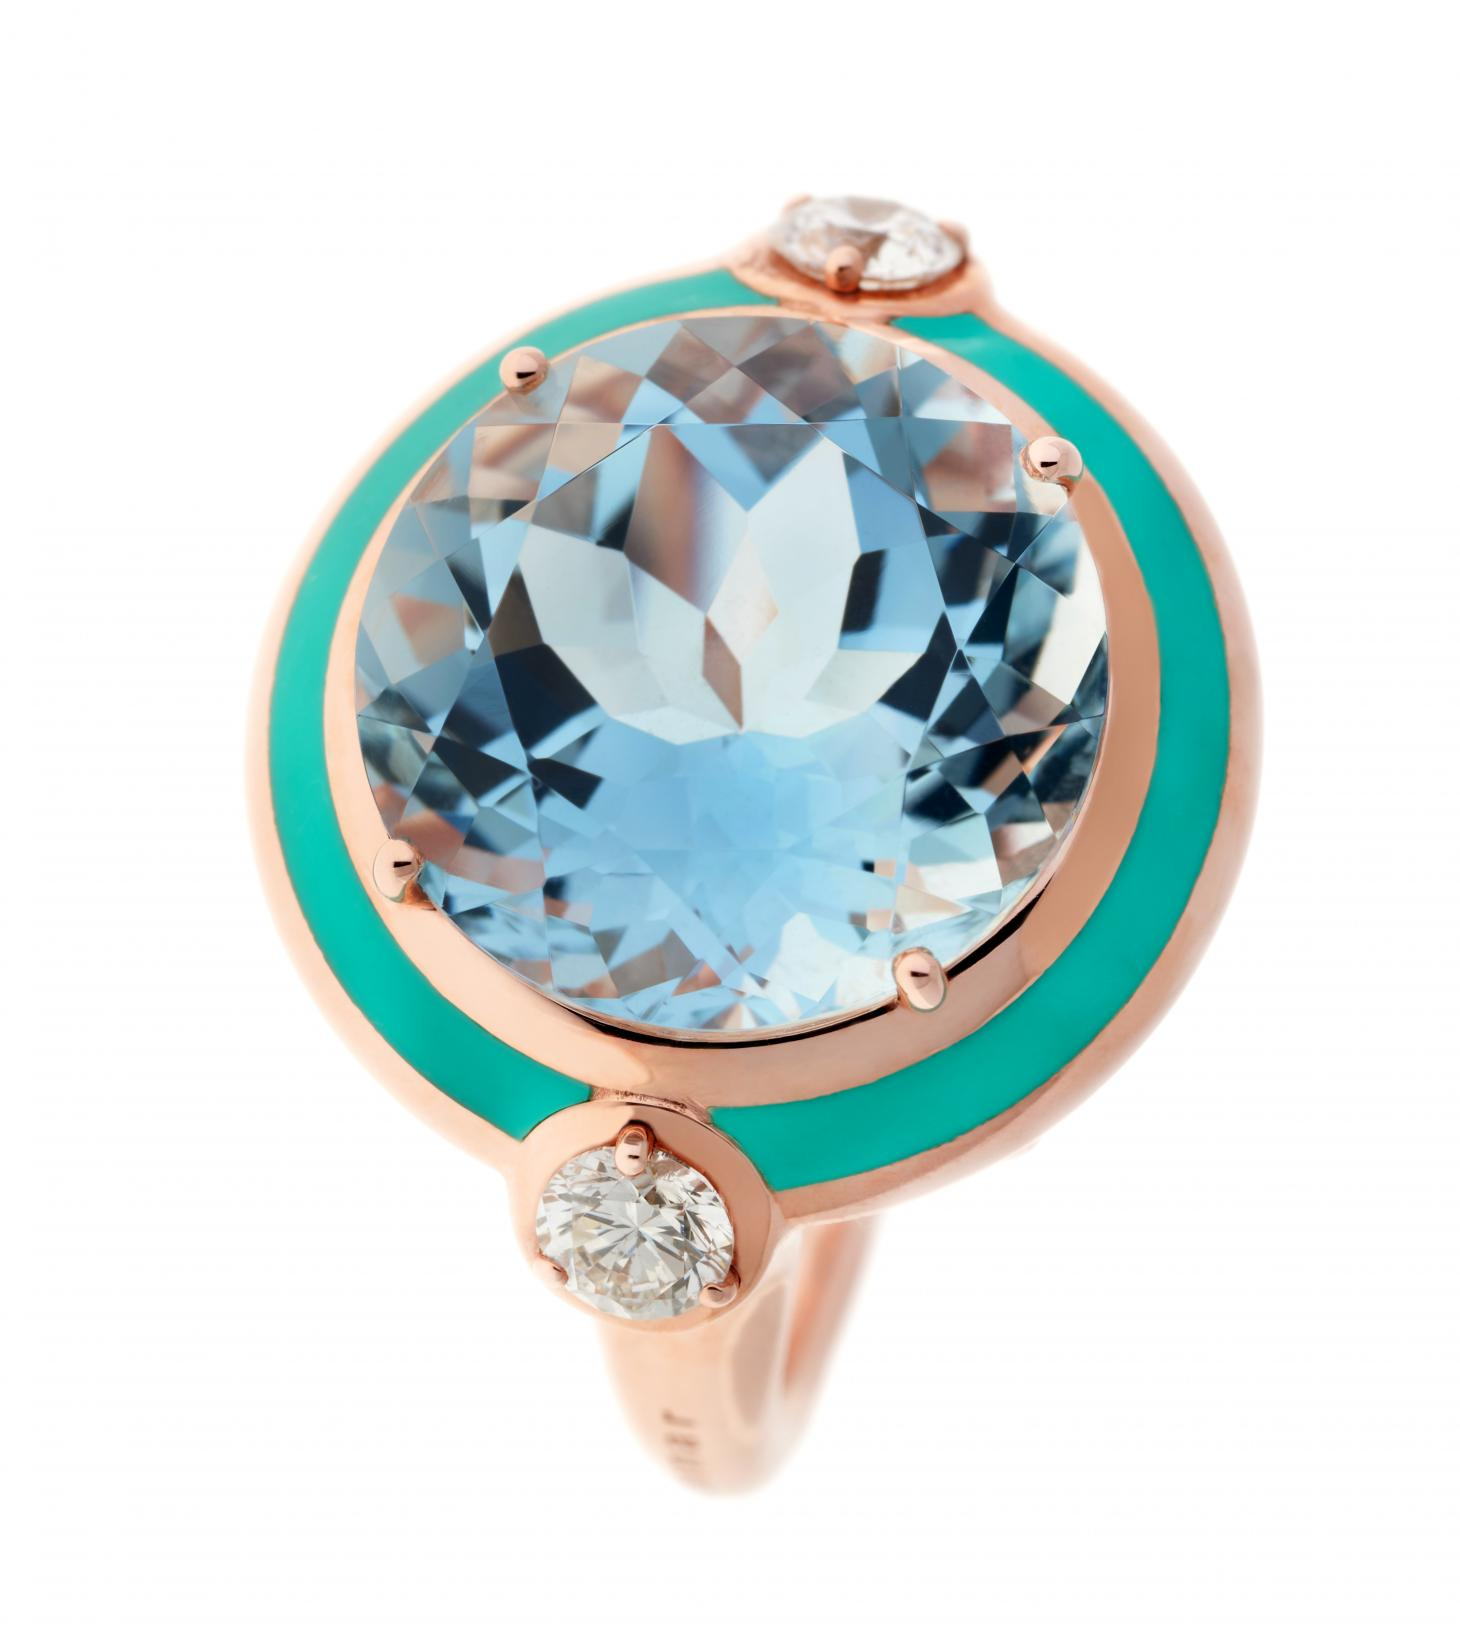 Aquamrine ring surrounded by a teal circle